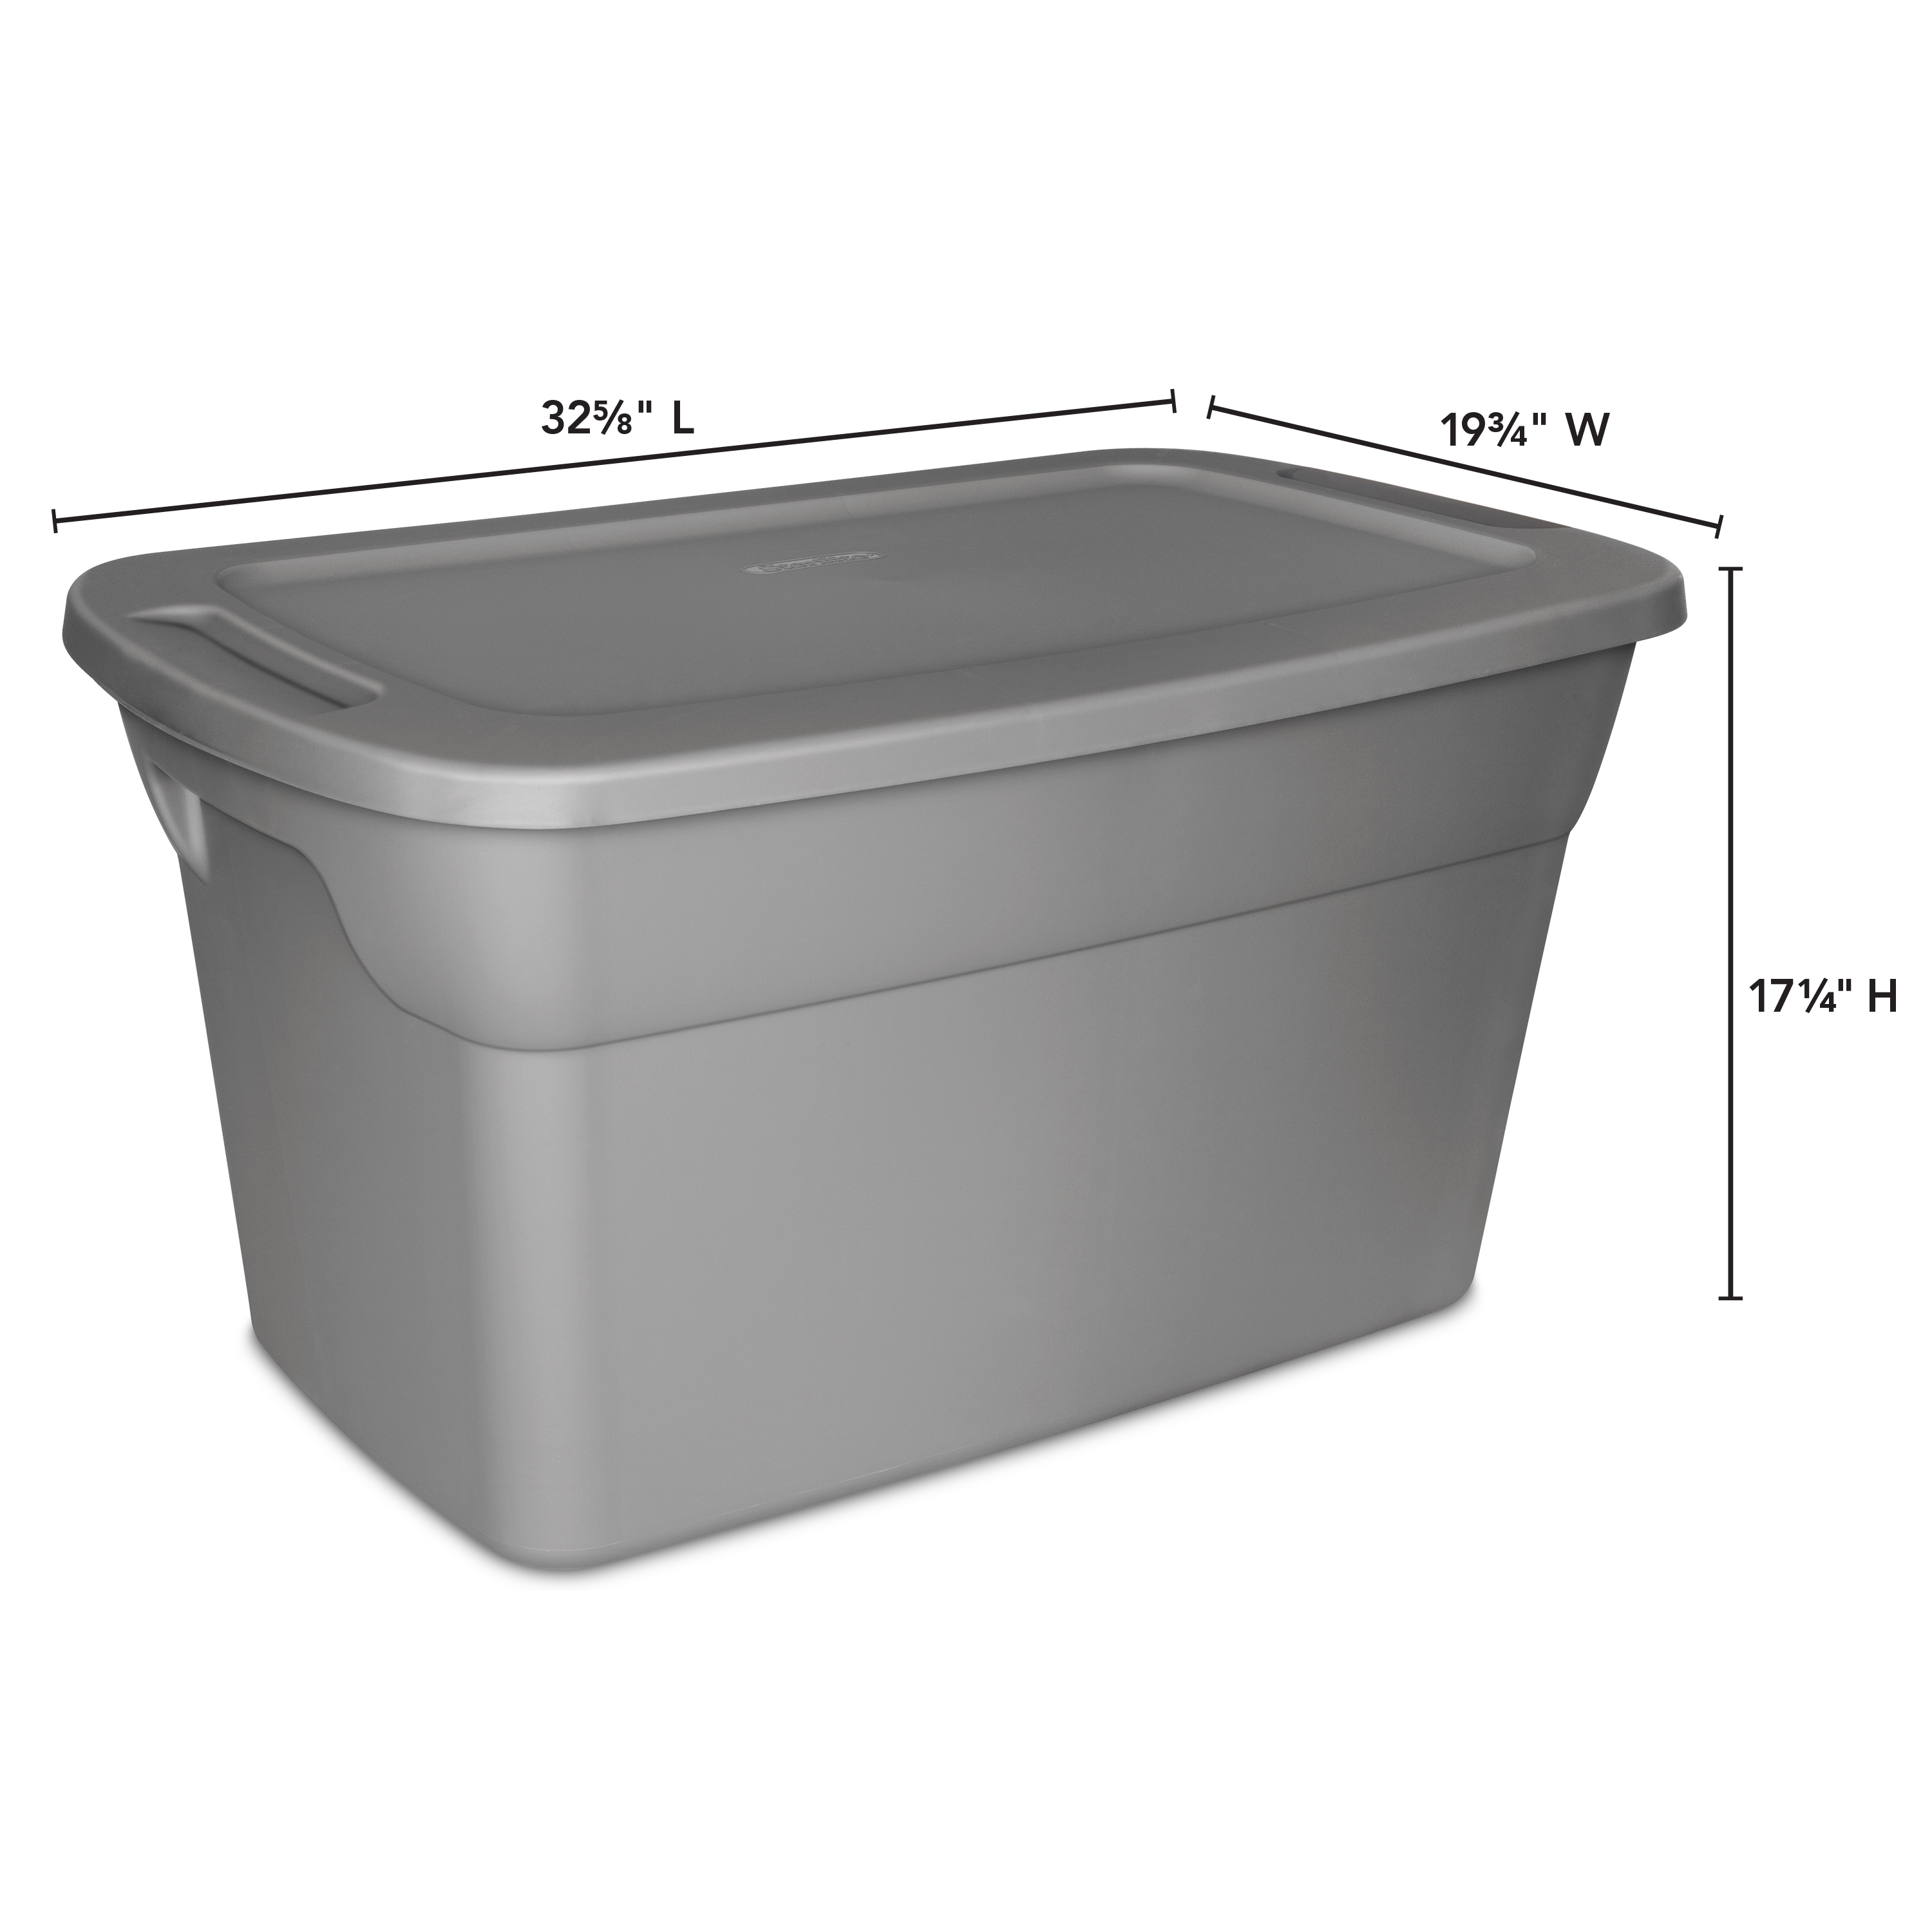 Sterilite 30 Gallon Tote Box